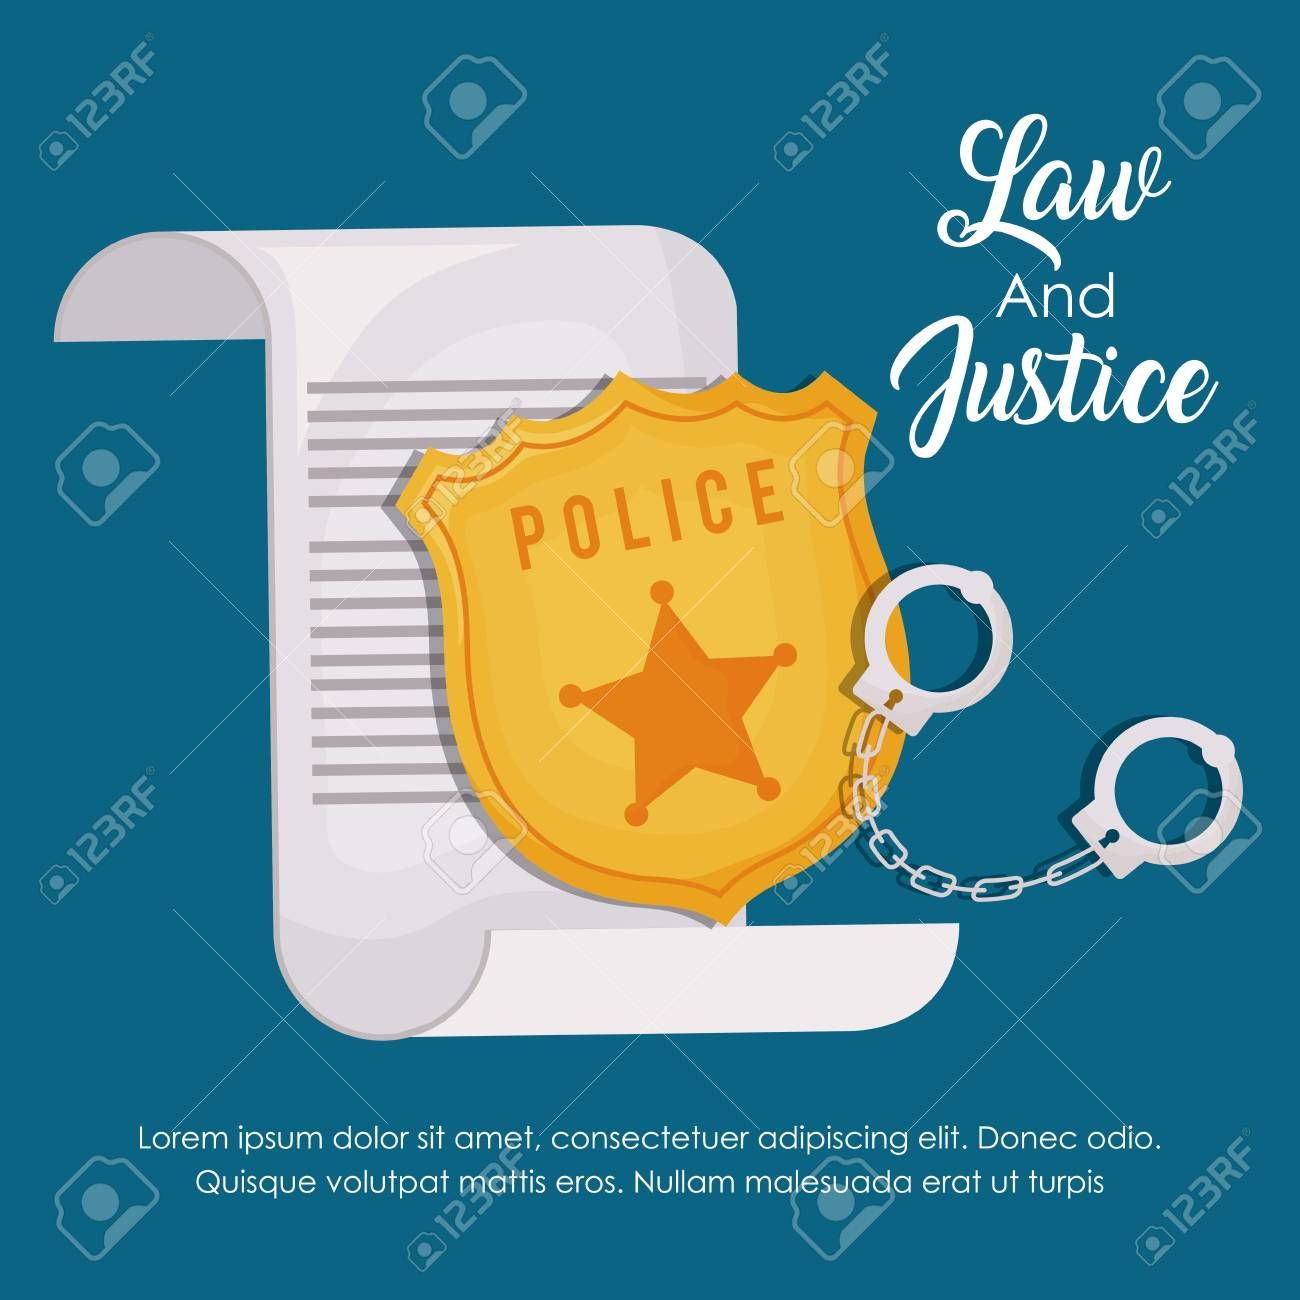 Law and justice design with police badge illustration on